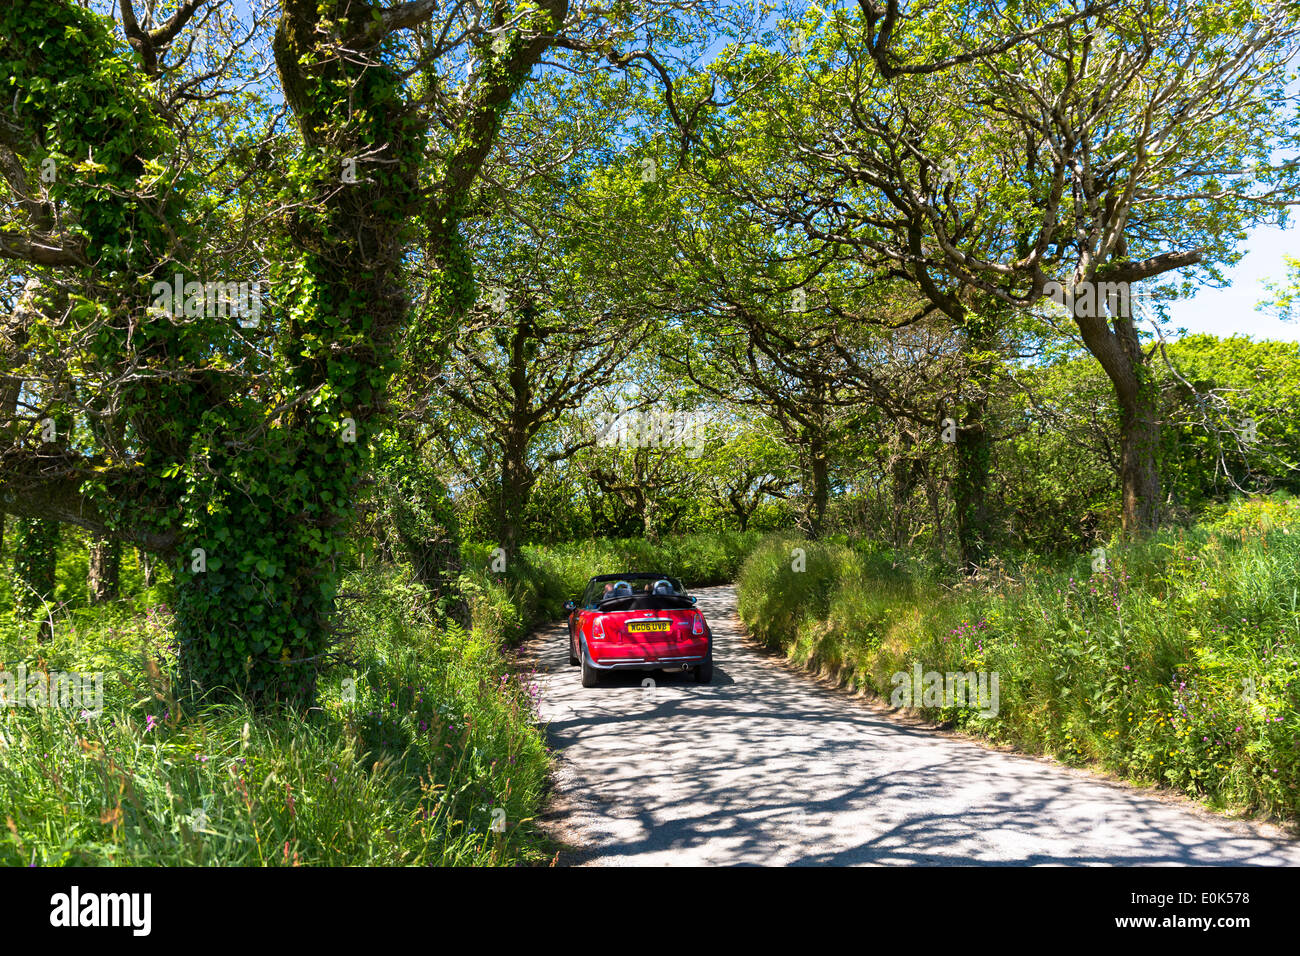 Driving a Mini Cooper convertible car along country lane on touring holiday of Devon and Cornwall in Southern England, UK - Stock Image